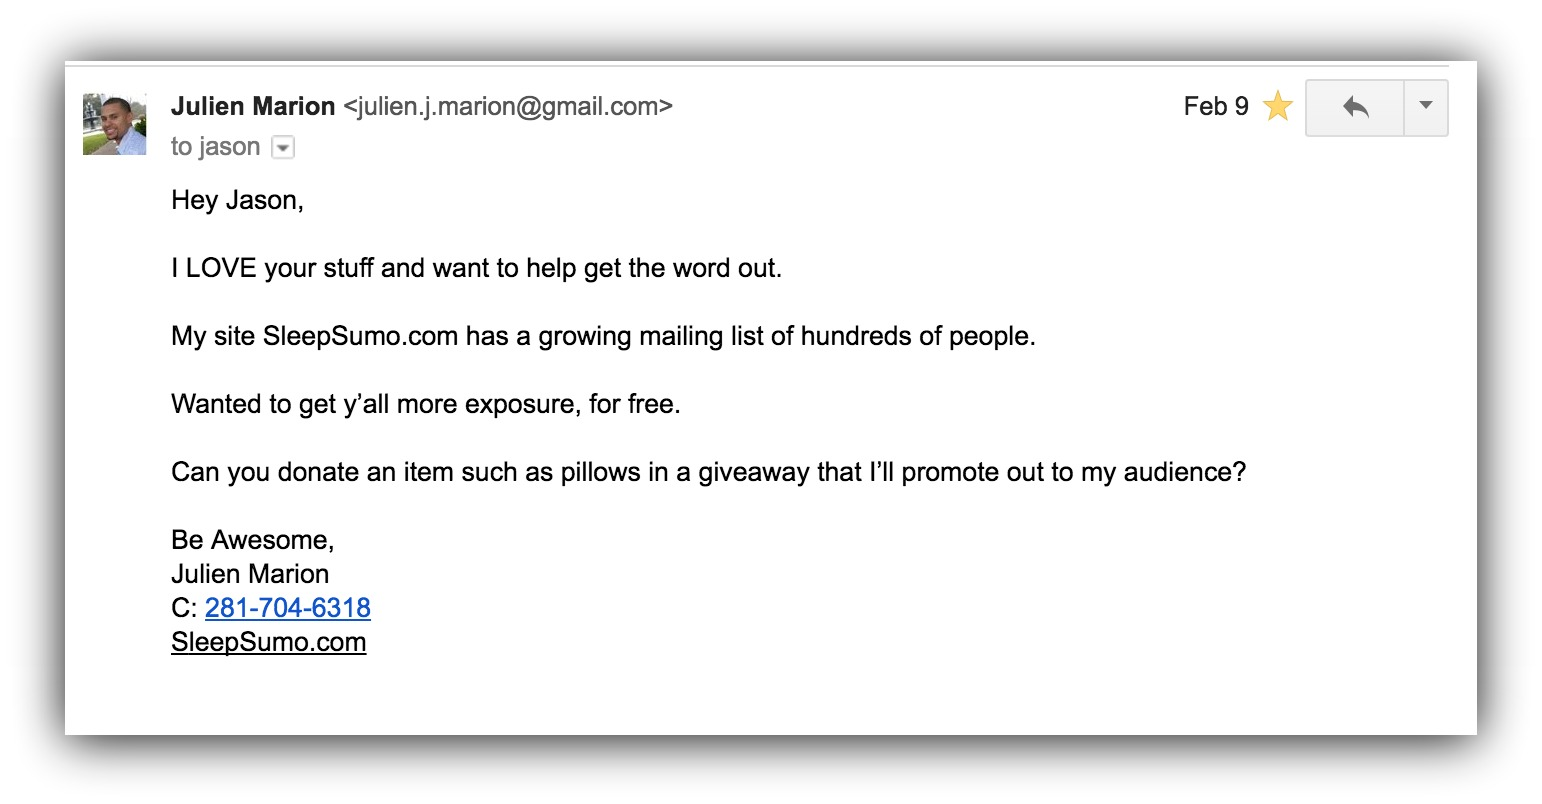 Screenshot of an outreach email to ask for pillows to create a giveaway